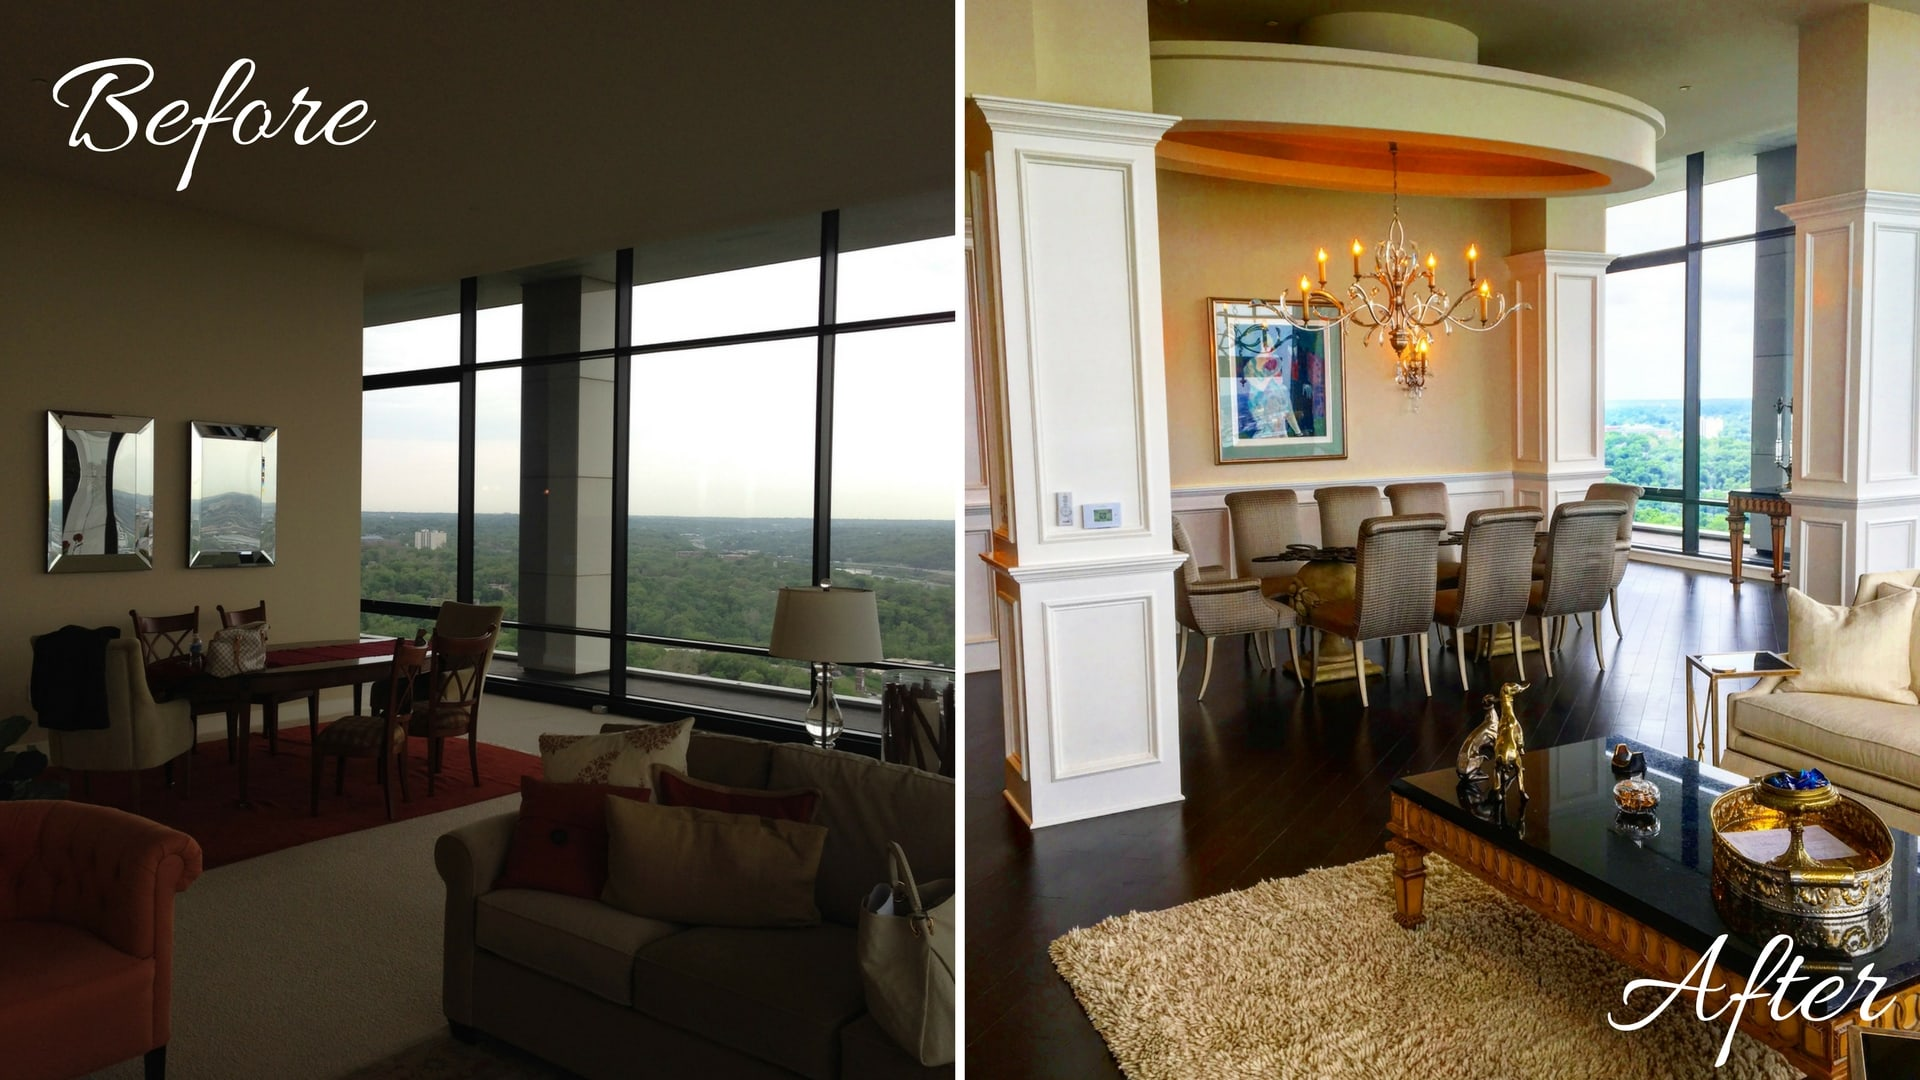 Penthouse Dining Room Before and After